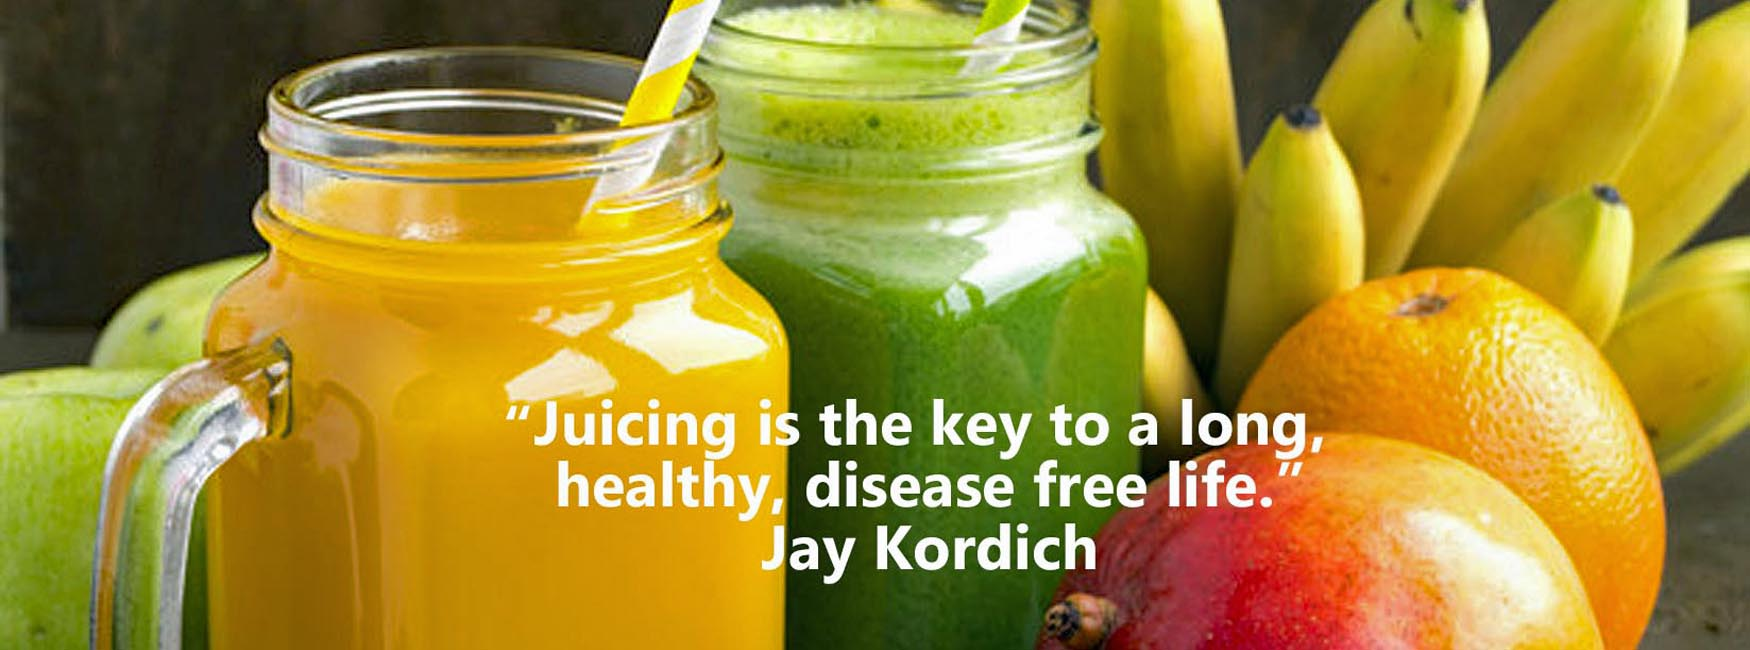 The benefits of juicing begin the moment you drink live juices that flood the cells with life giving nutrients.